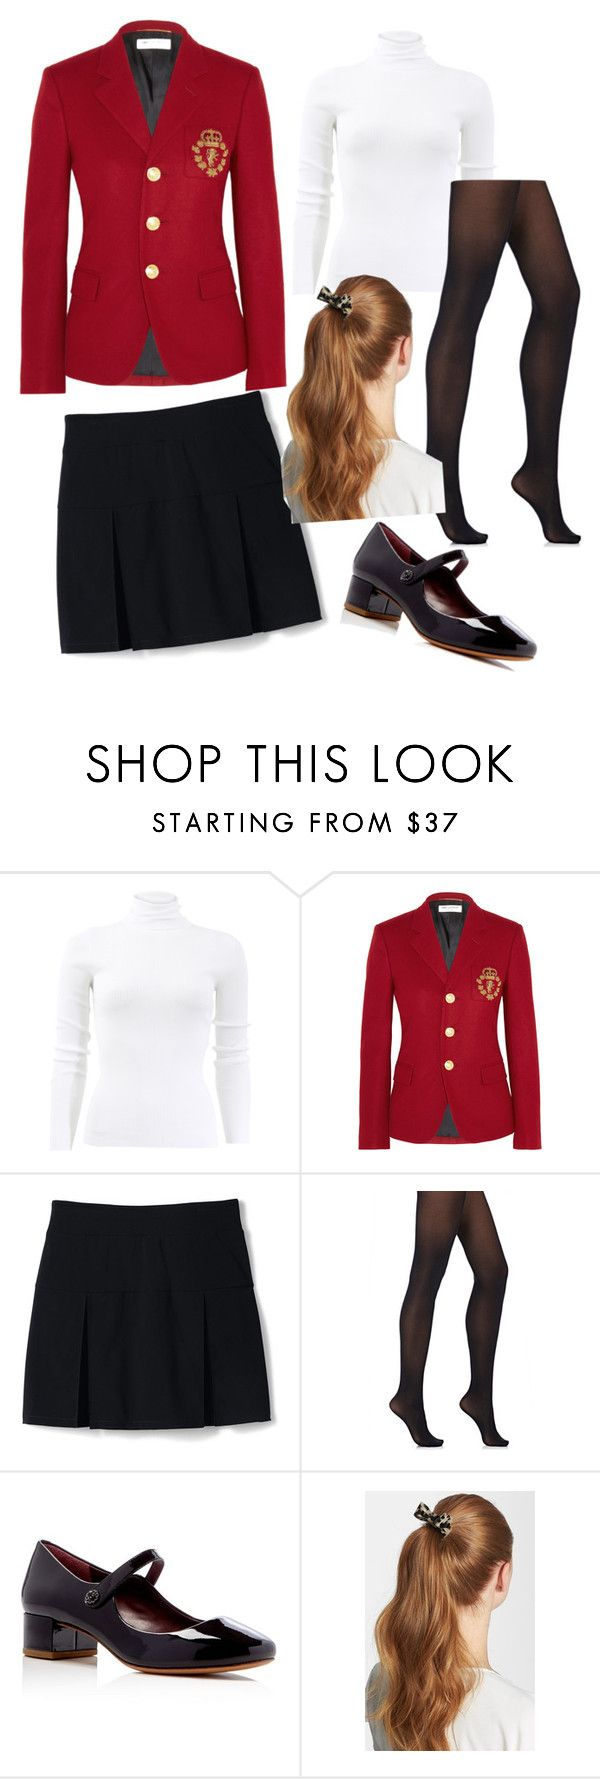 """""""school"""" by dw-fashion-unlimited ❤ liked on Polyvore featuring Michael Kors, Yves Saint Laurent, Lands' End, Wolford, Marc Jacobs and L. Erickson"""